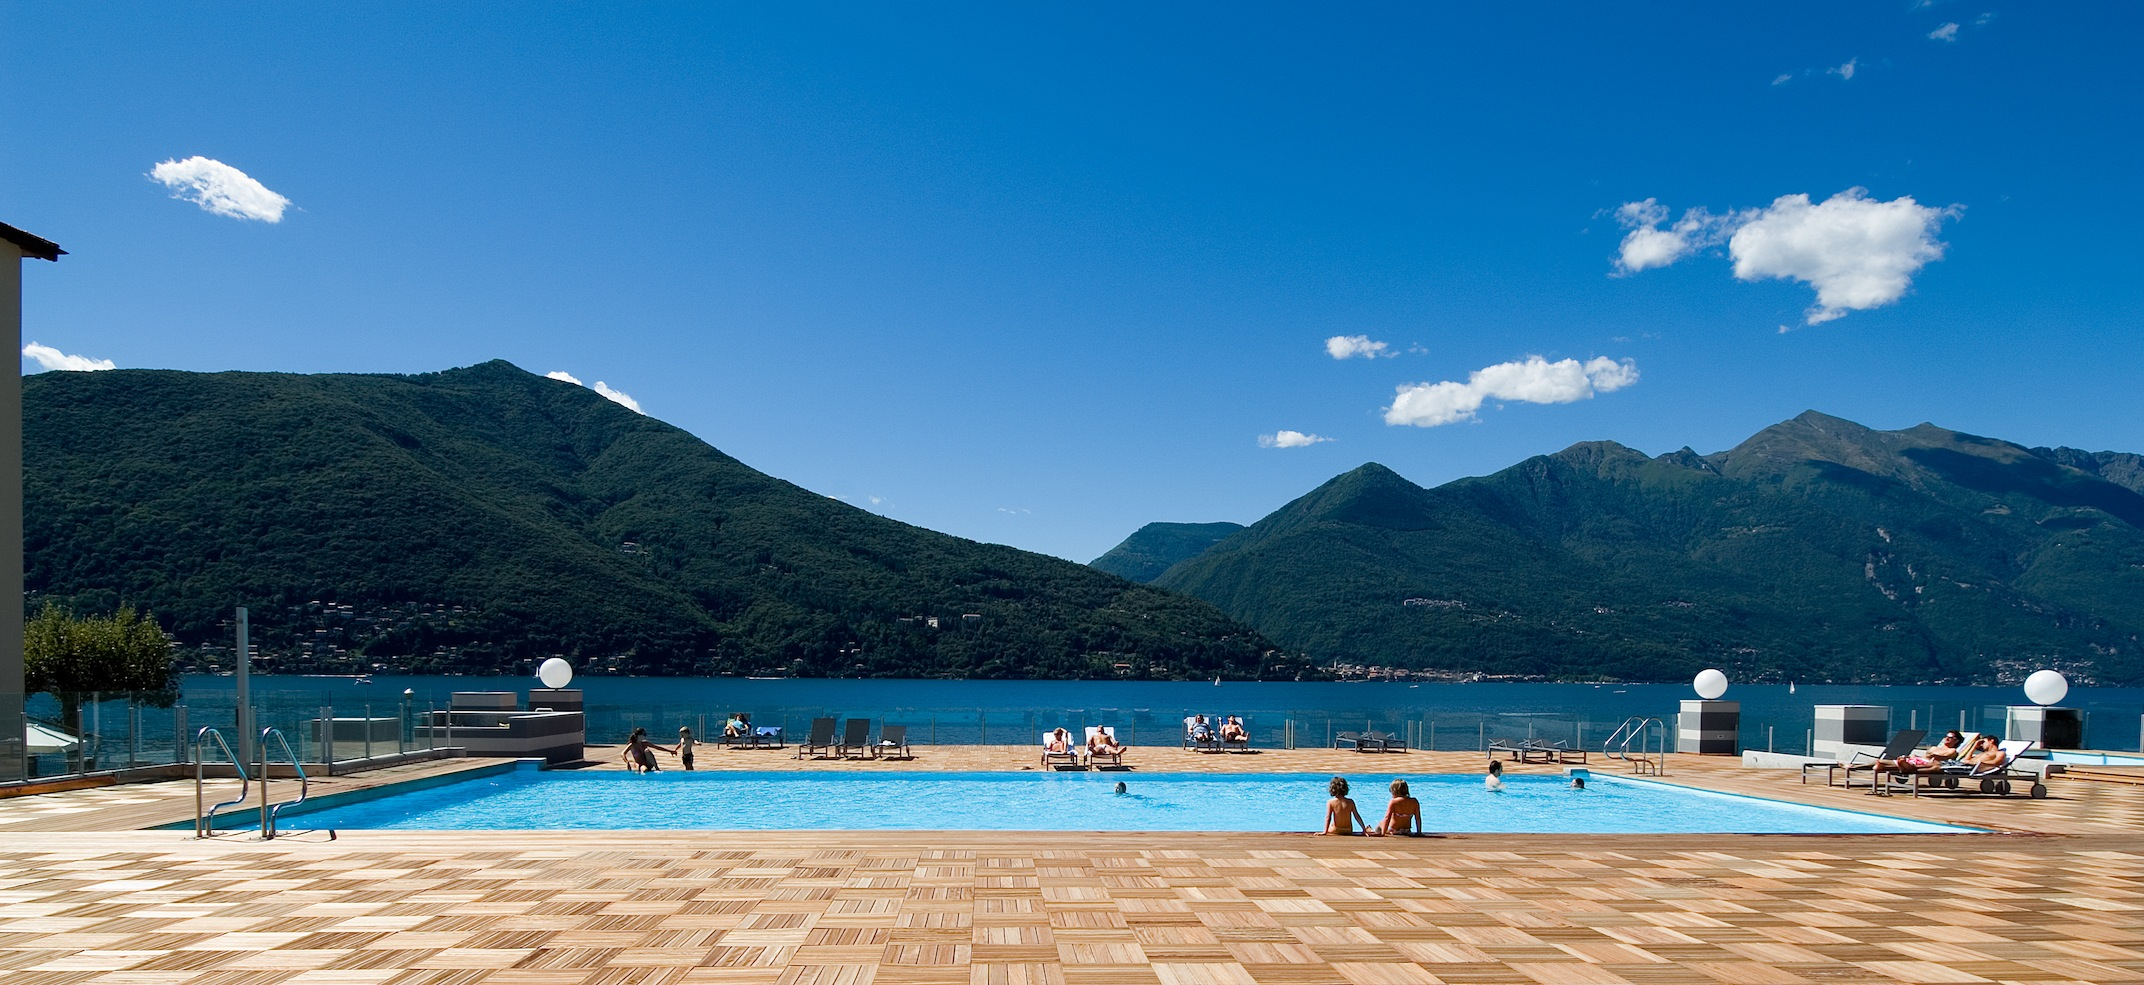 https://www.in-lombardia.it/sites/default/files/accomodation/images/105448/32225/swimming_pool_area.jpg